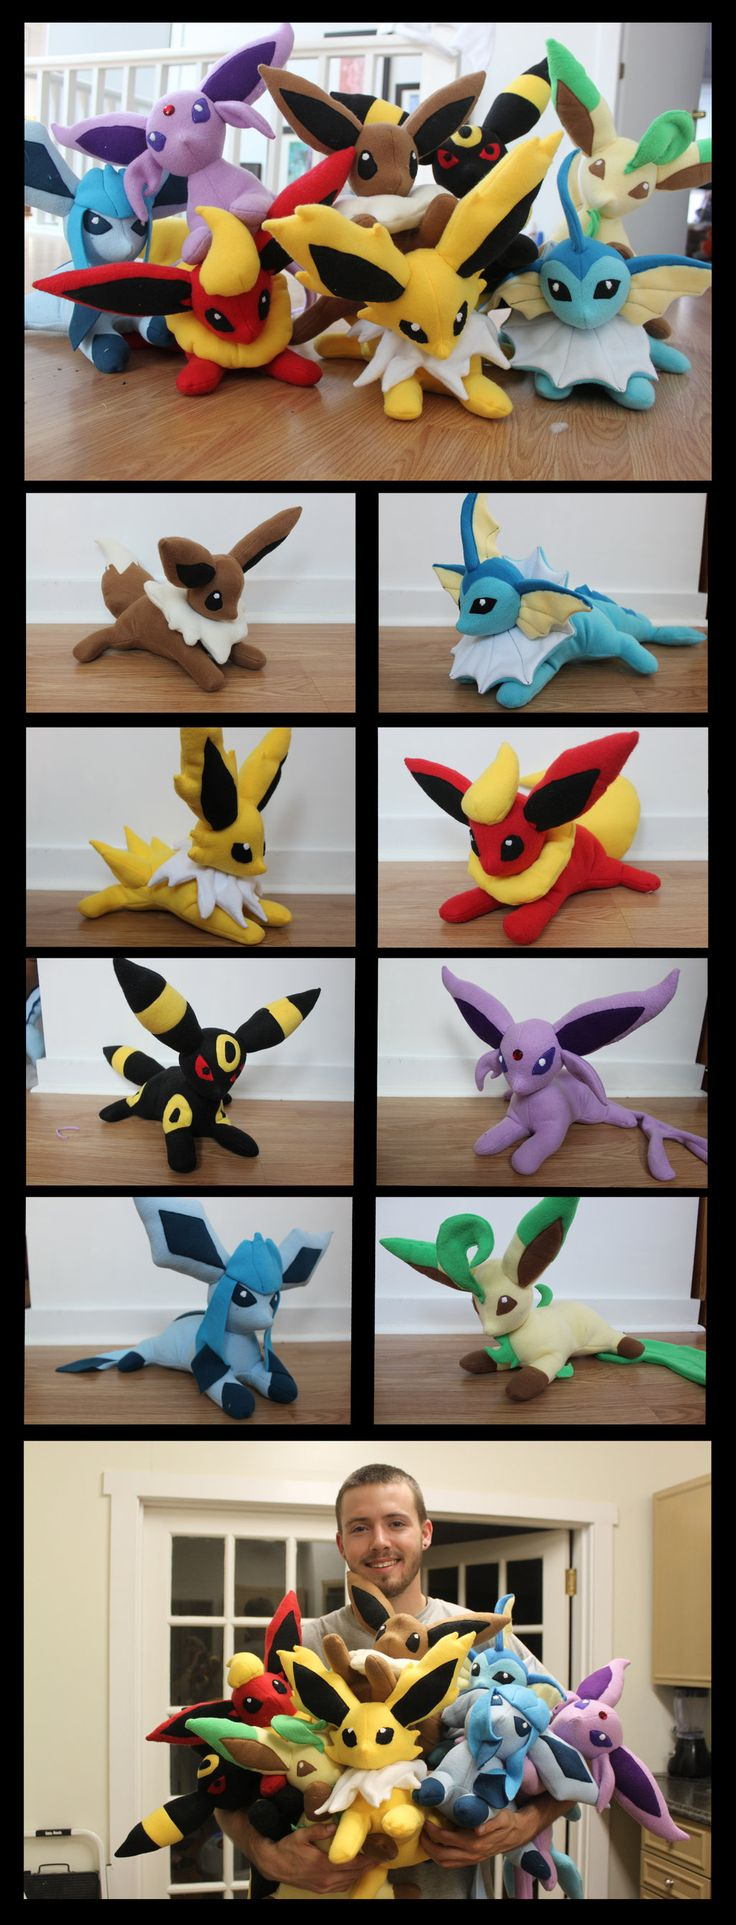 Eeveelutions Plushies by *NsomniacArtist on deviantART